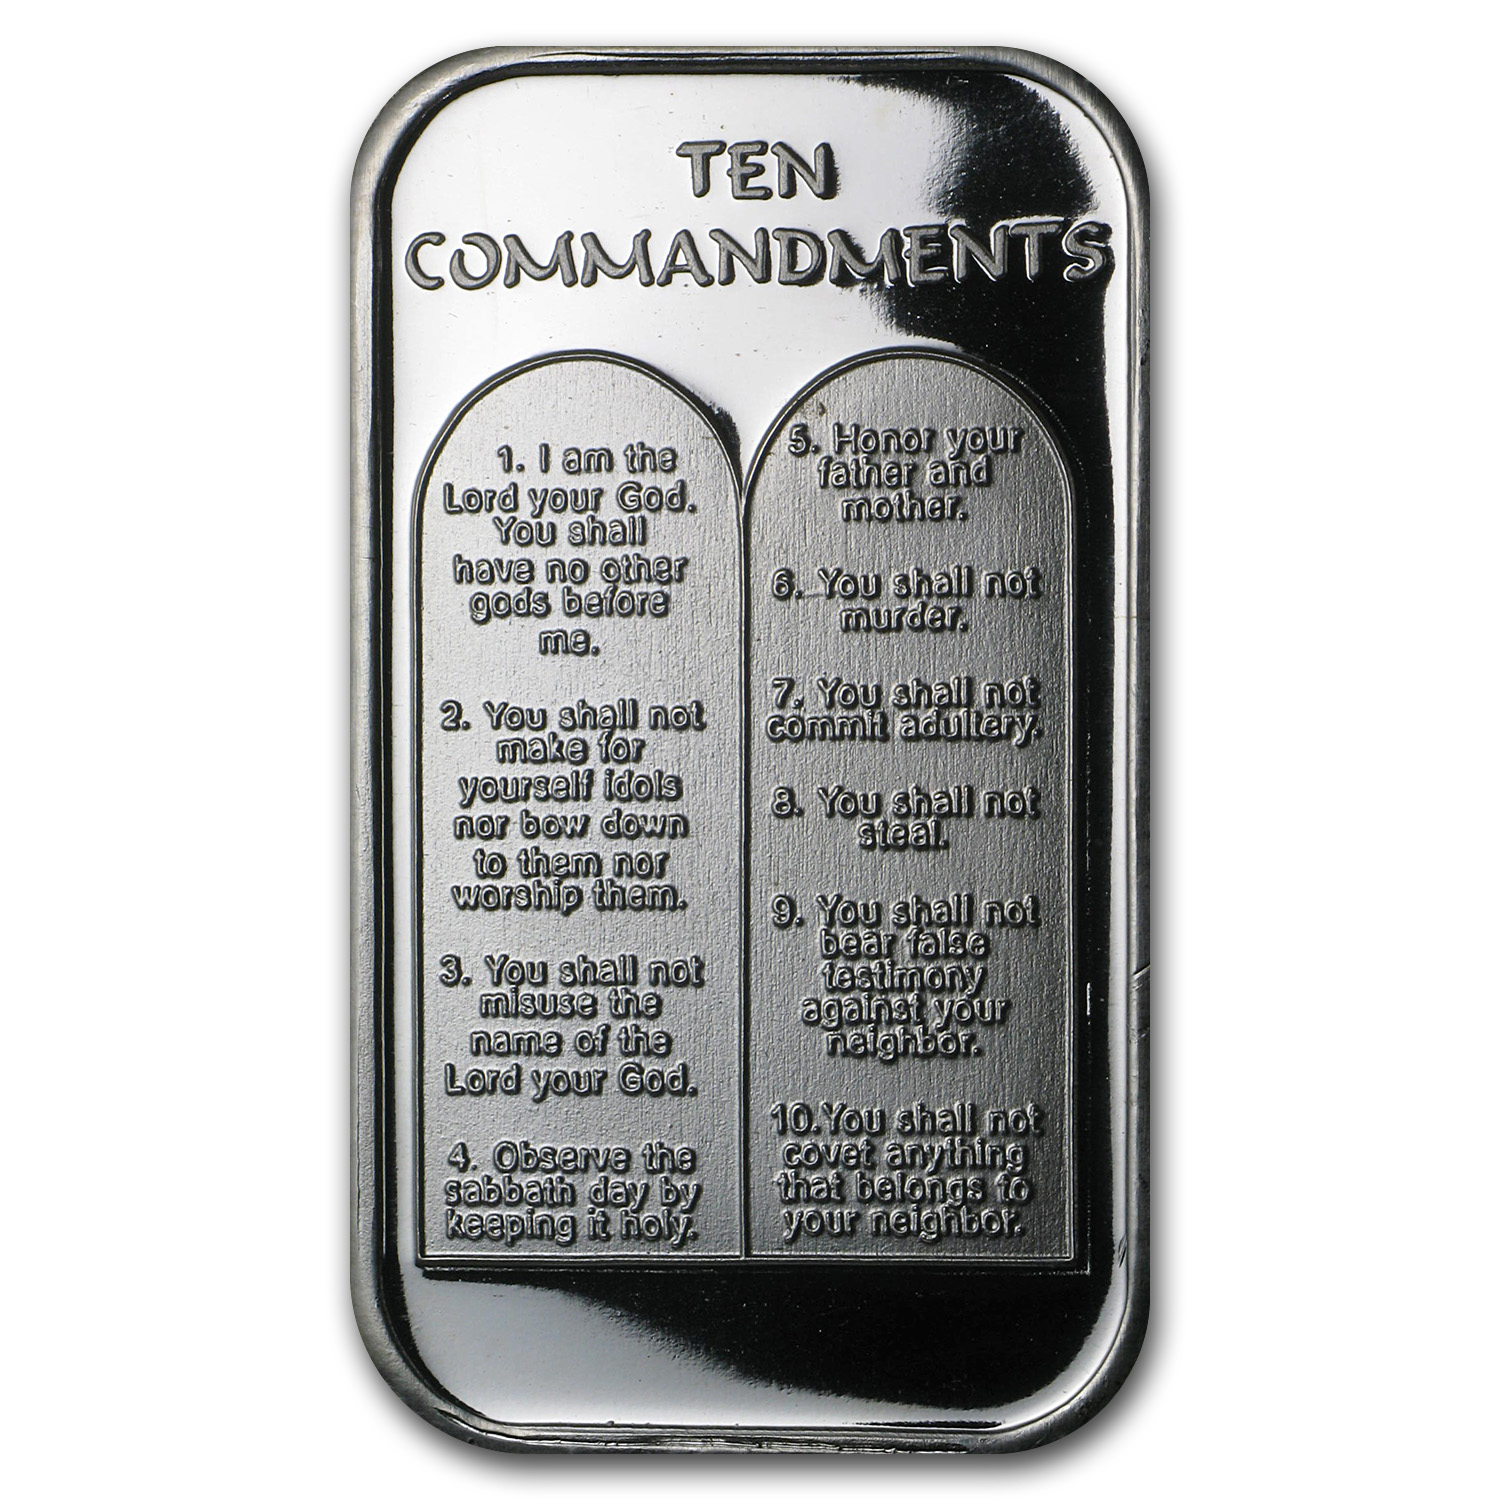 1 oz Silver Bar - Ten Commandments (German)